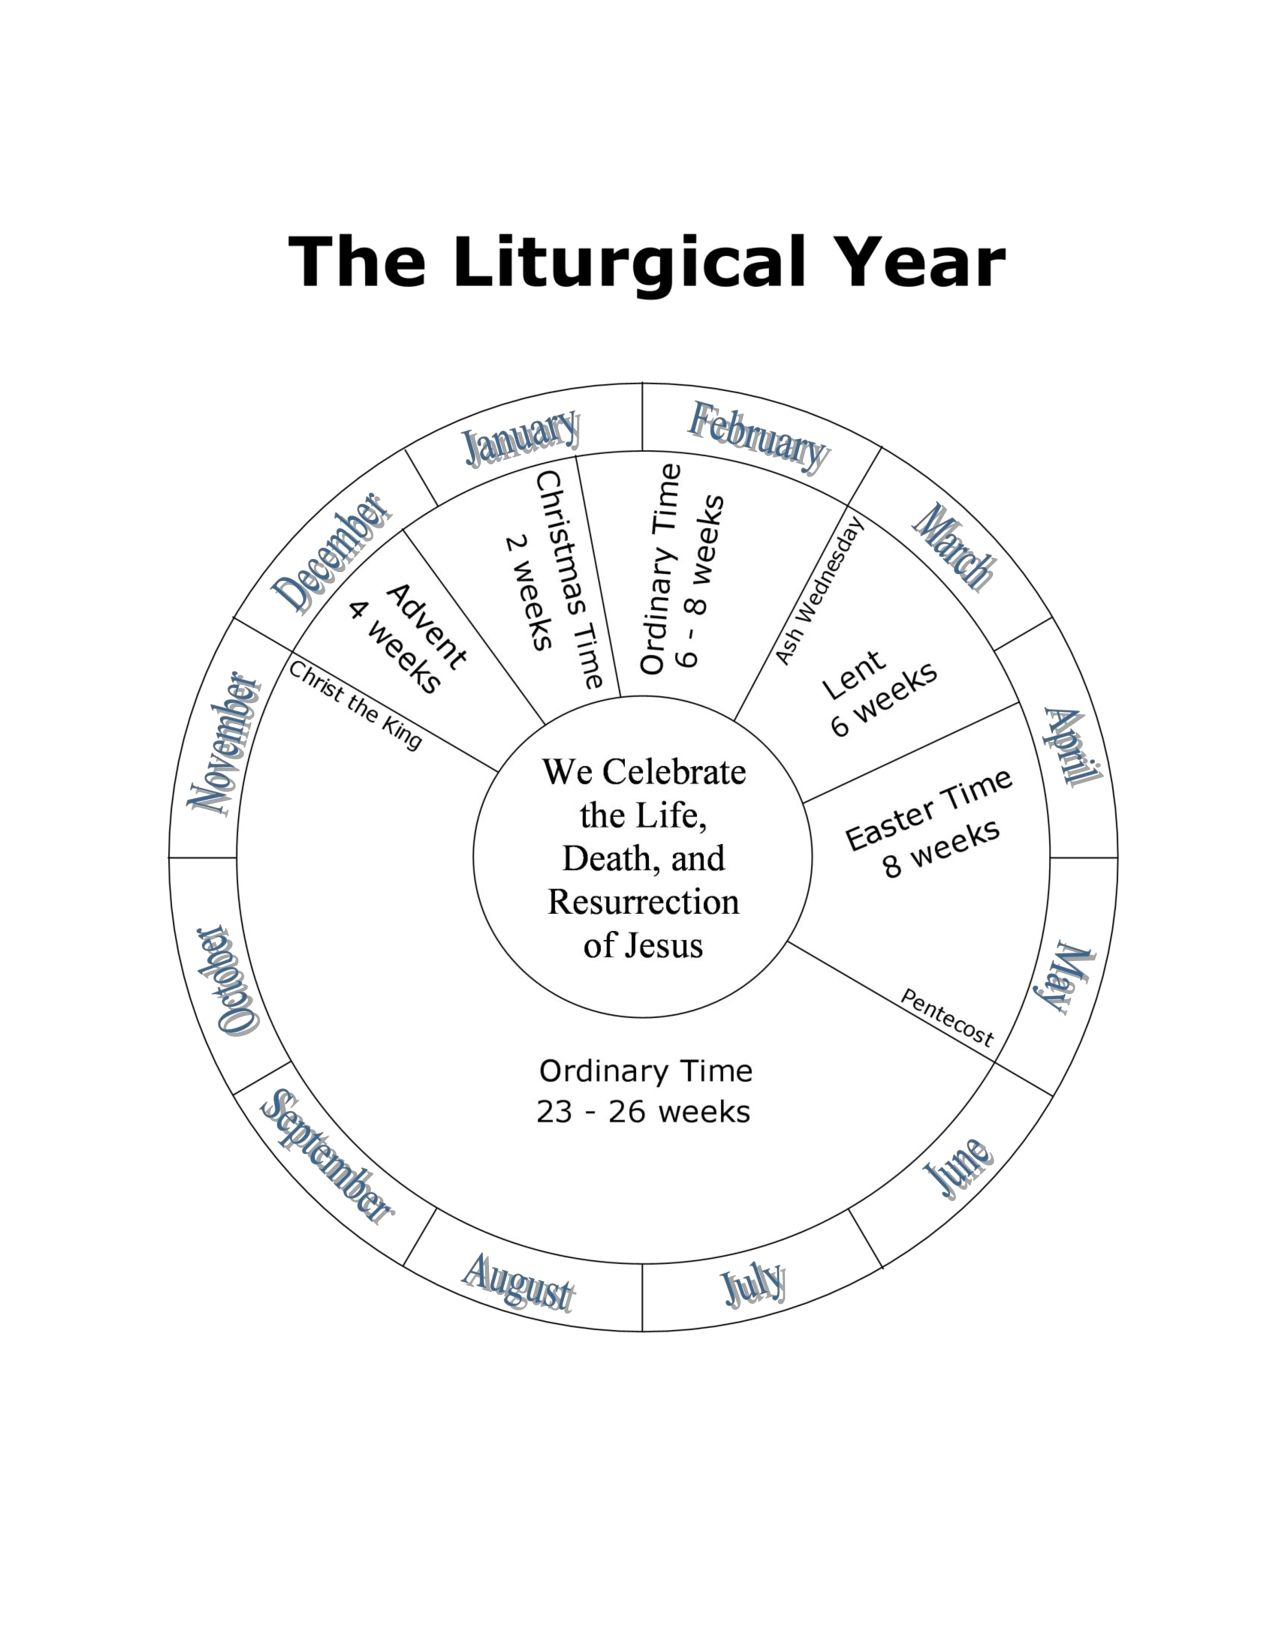 Year C Catholic Calendar In 2020 | Catholic Liturgical with Catholic Liturgical Calender Year C: